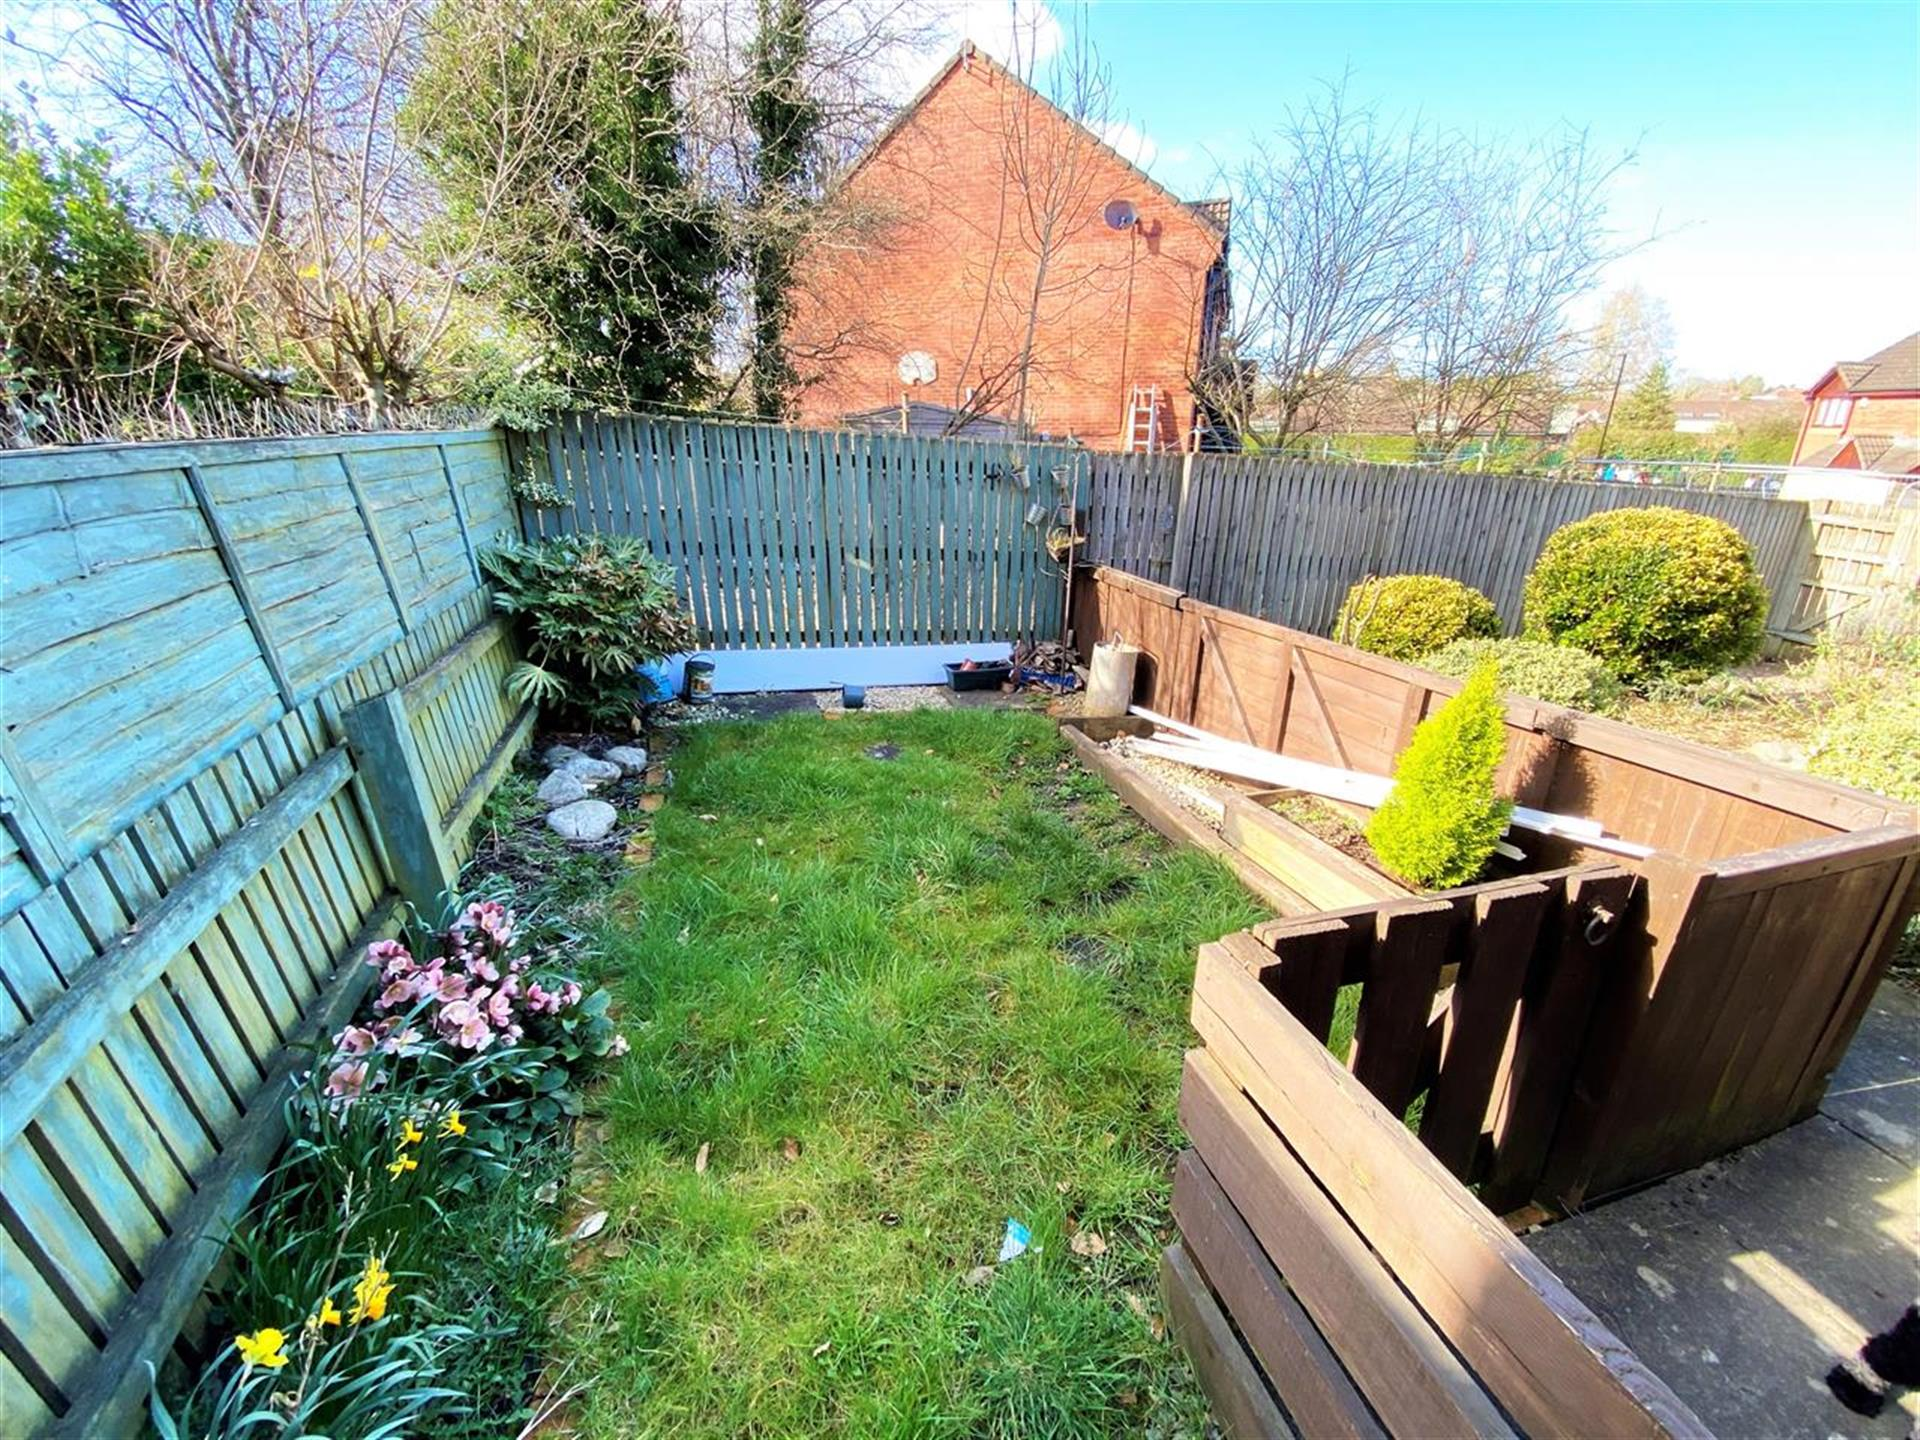 1 Bedroom Apartment Flat / Apartment For Sale - Rear Garden